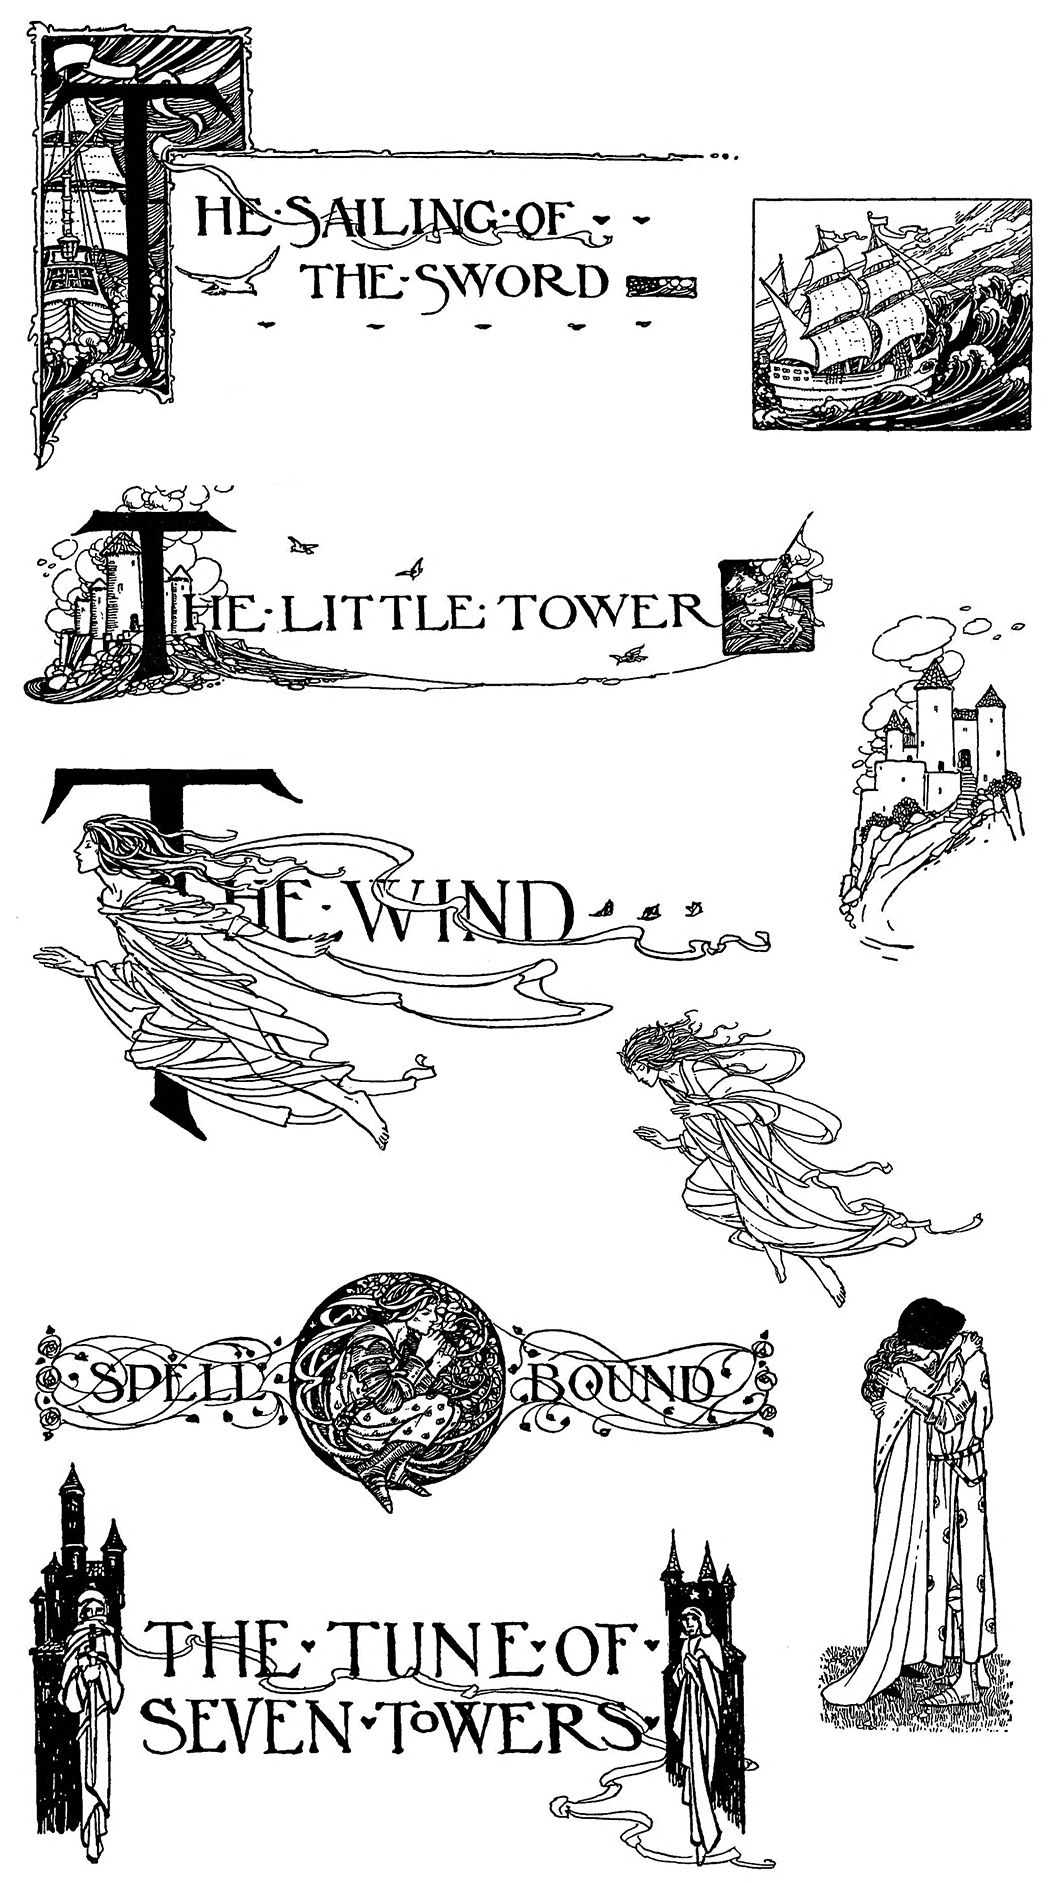 Chapter headings and tail pieces designed by Florence